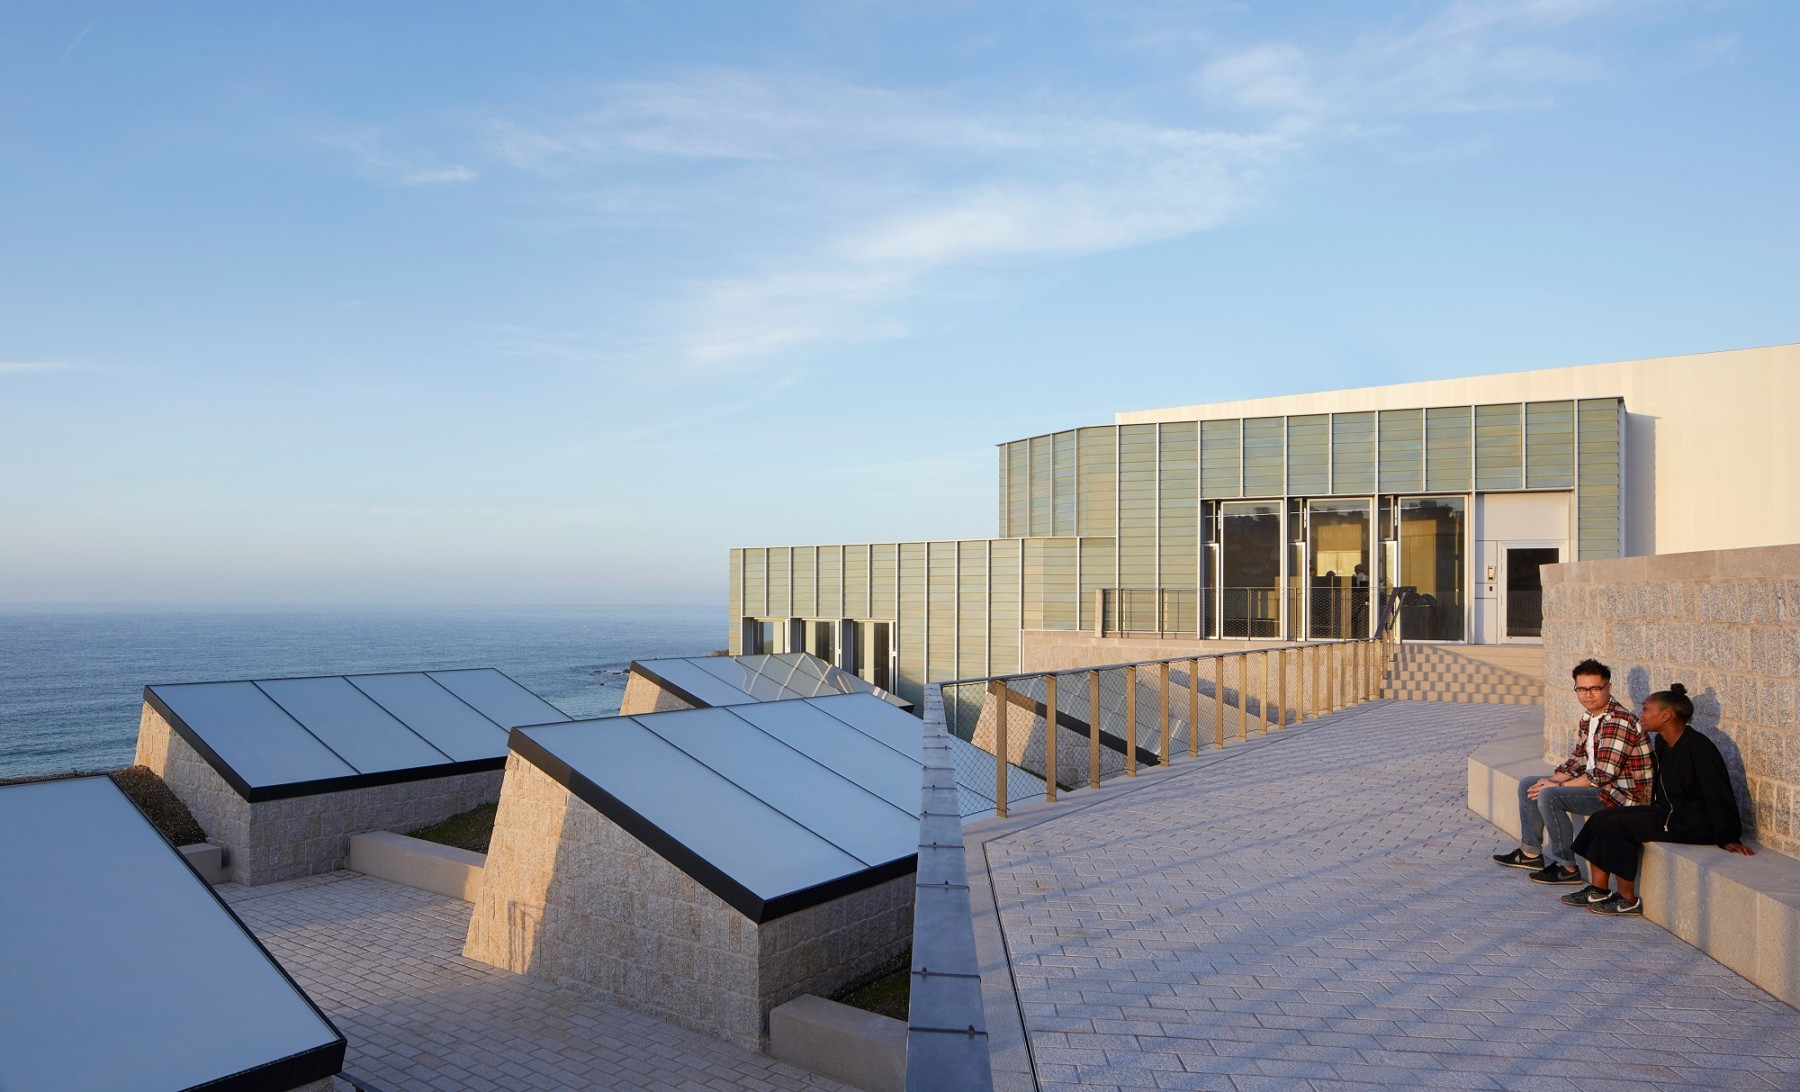 Jamie-Fobert-Architects Tate-St-Ives Cornwall Hufton+Crow beach-terrace-RIBA-Award-Awards-Winner